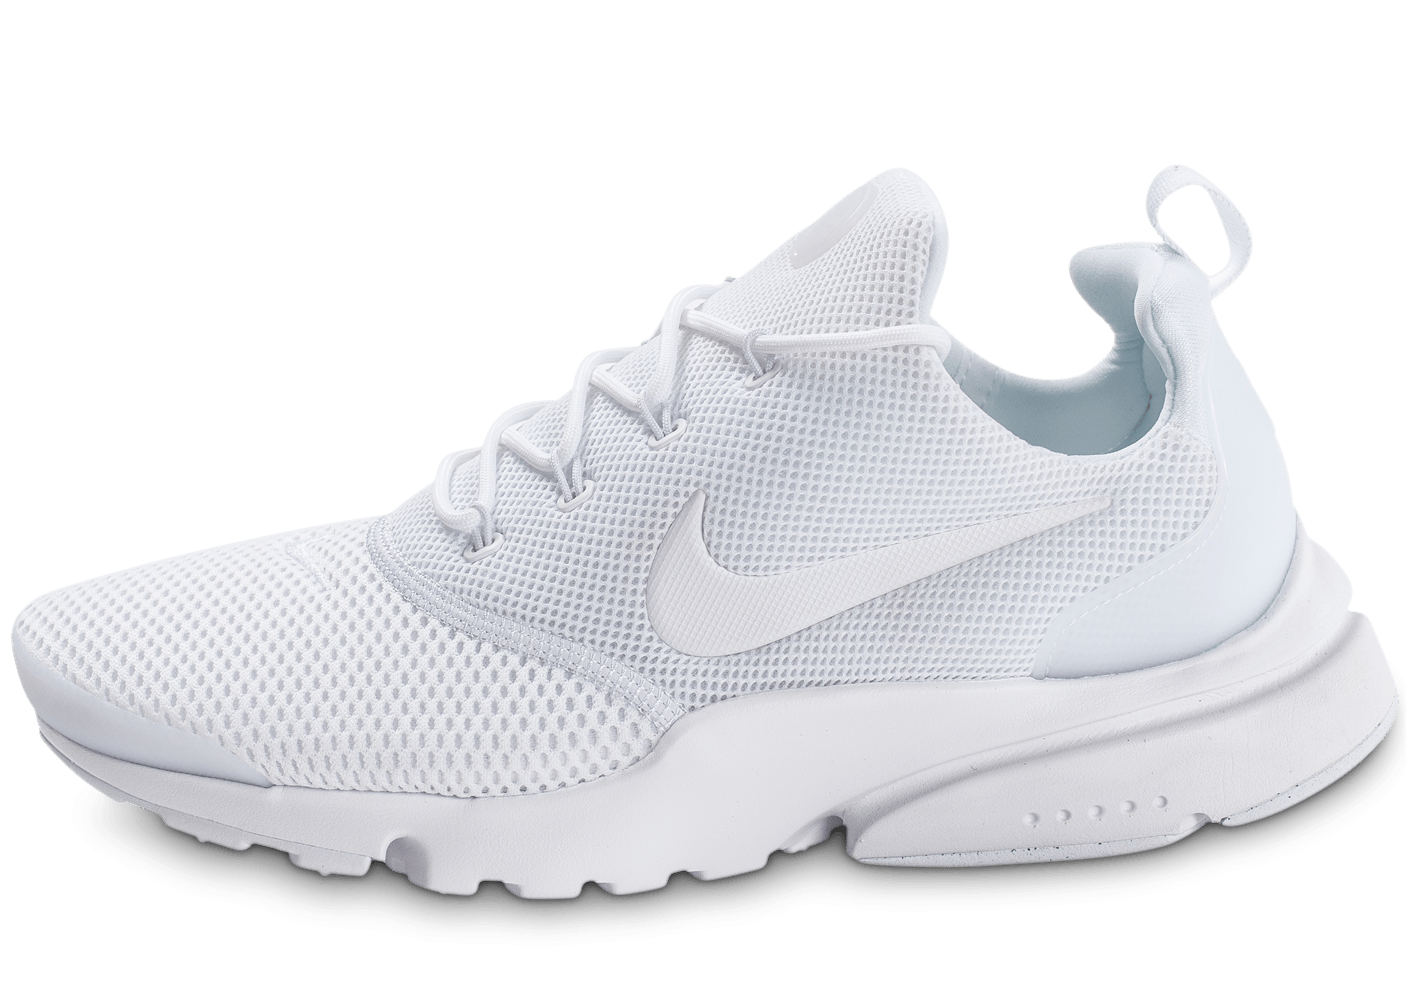 official photos 2fe30 4b56c Nike Presto Fly triple blanc - Chaussures Baskets homme - Chausport